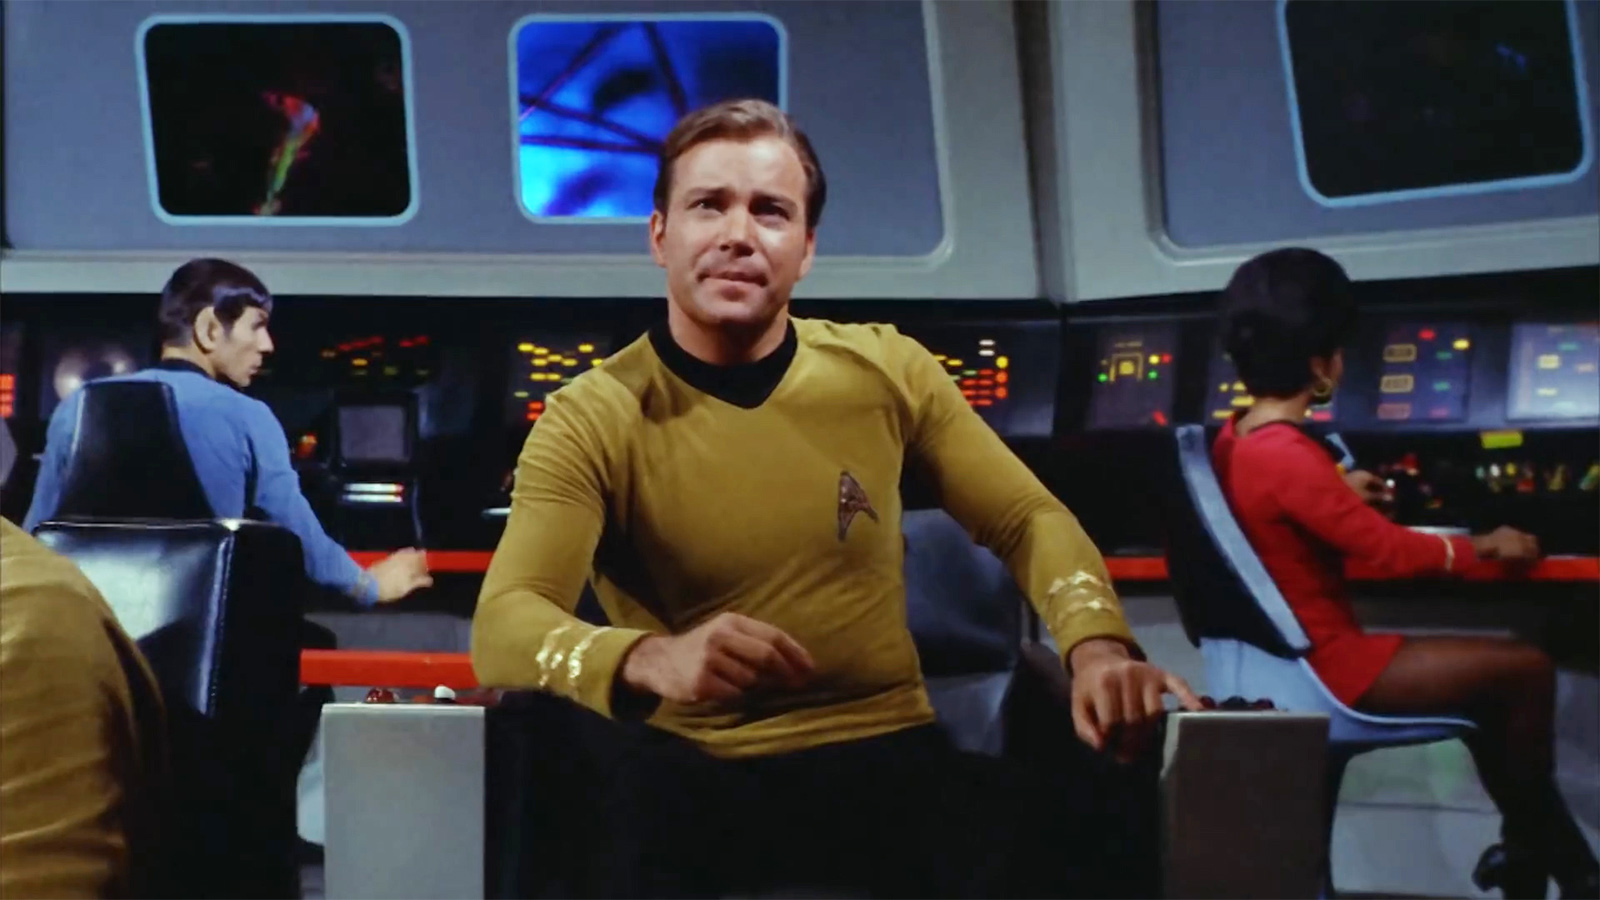 slide 3 - Captain Kirk sits in his chair on the bridge of the U.S.S. Enterprise.